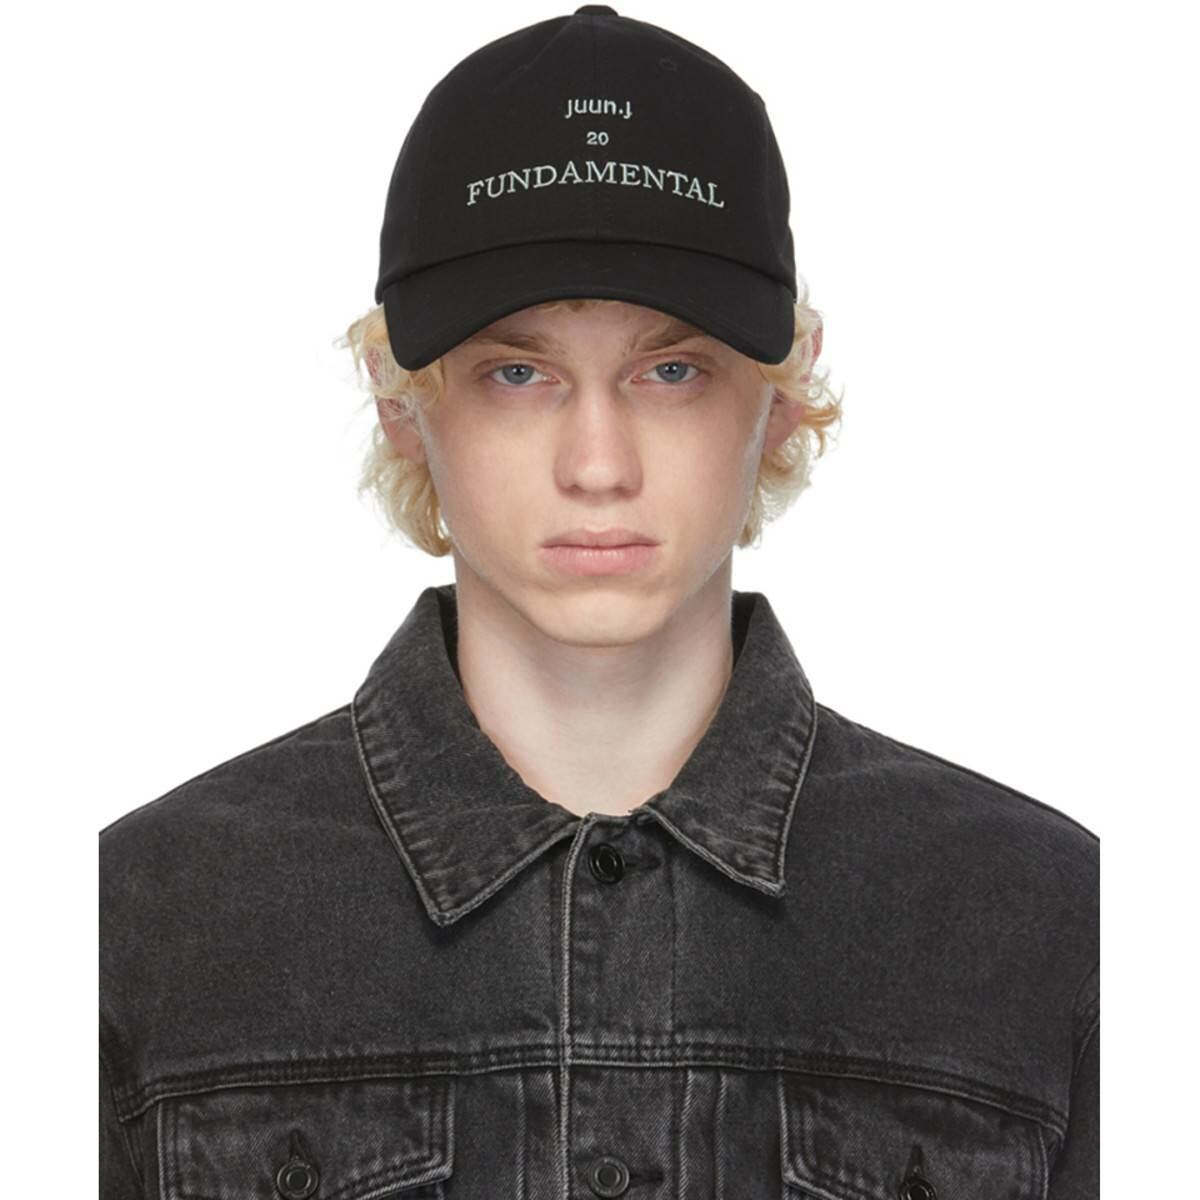 Juun.J Black Fundamental Baseball Cap Ssense USA MEN Men ACCESSORIES Mens CAPS